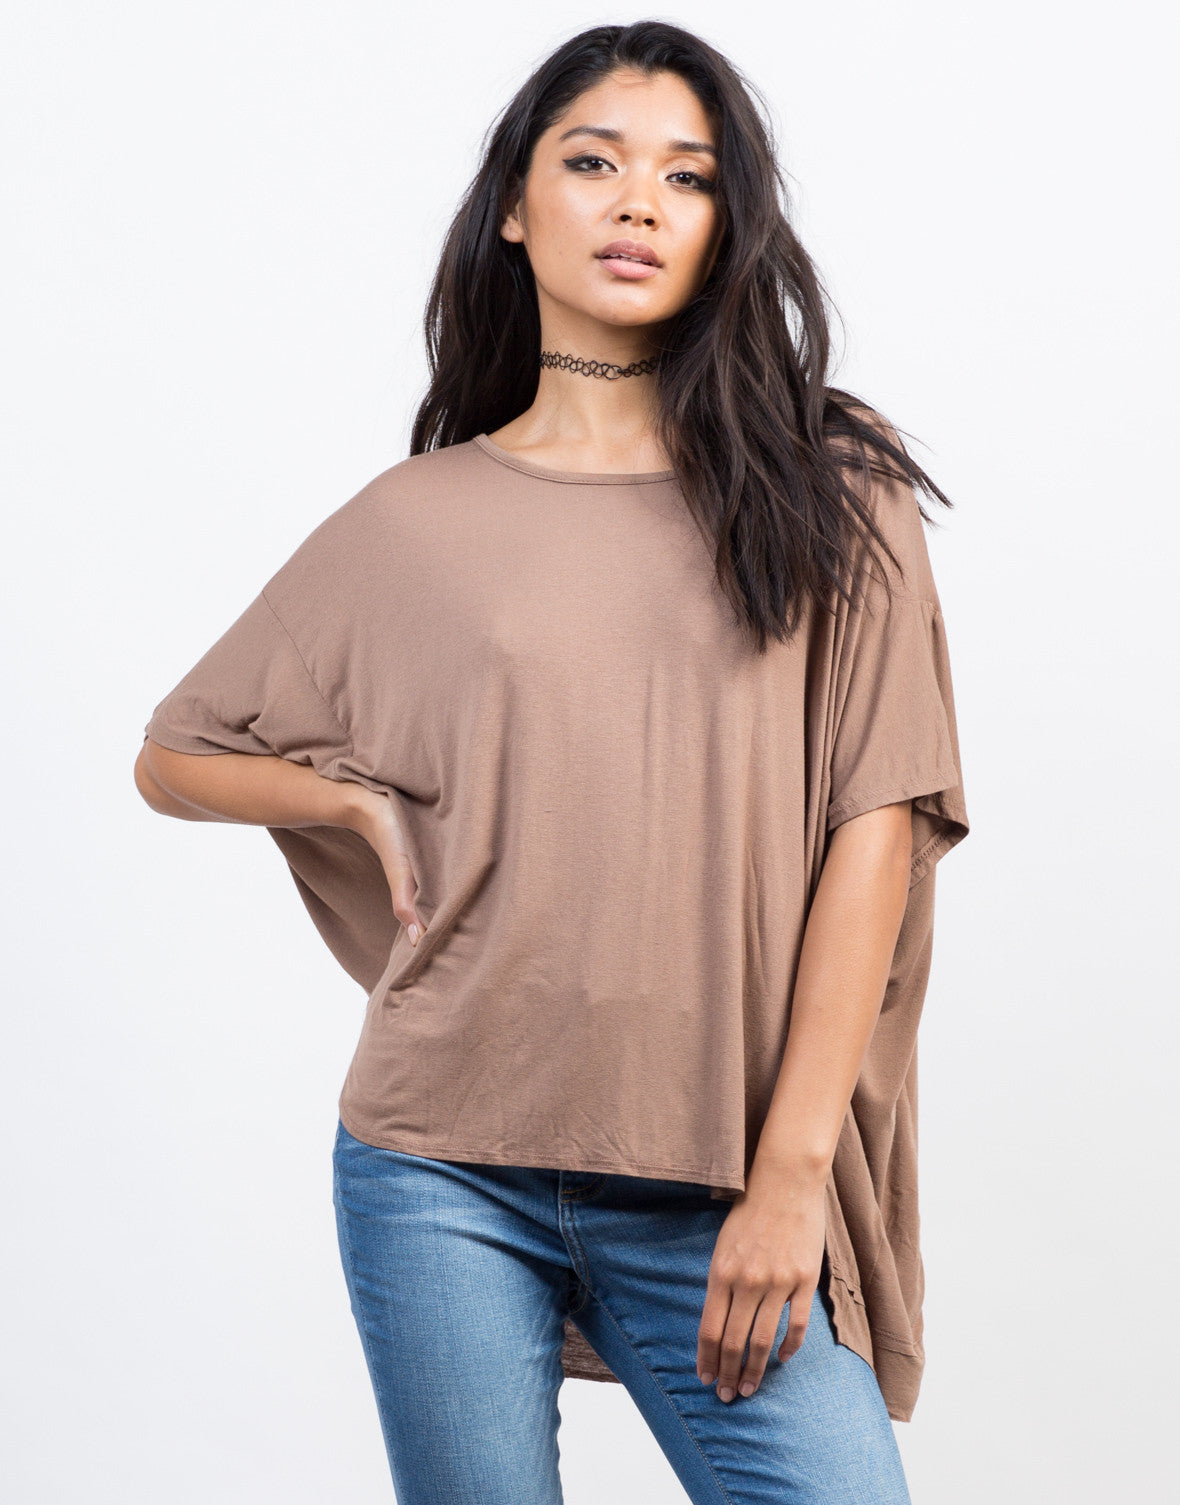 Front View of Oversized Boxy Basic Tee